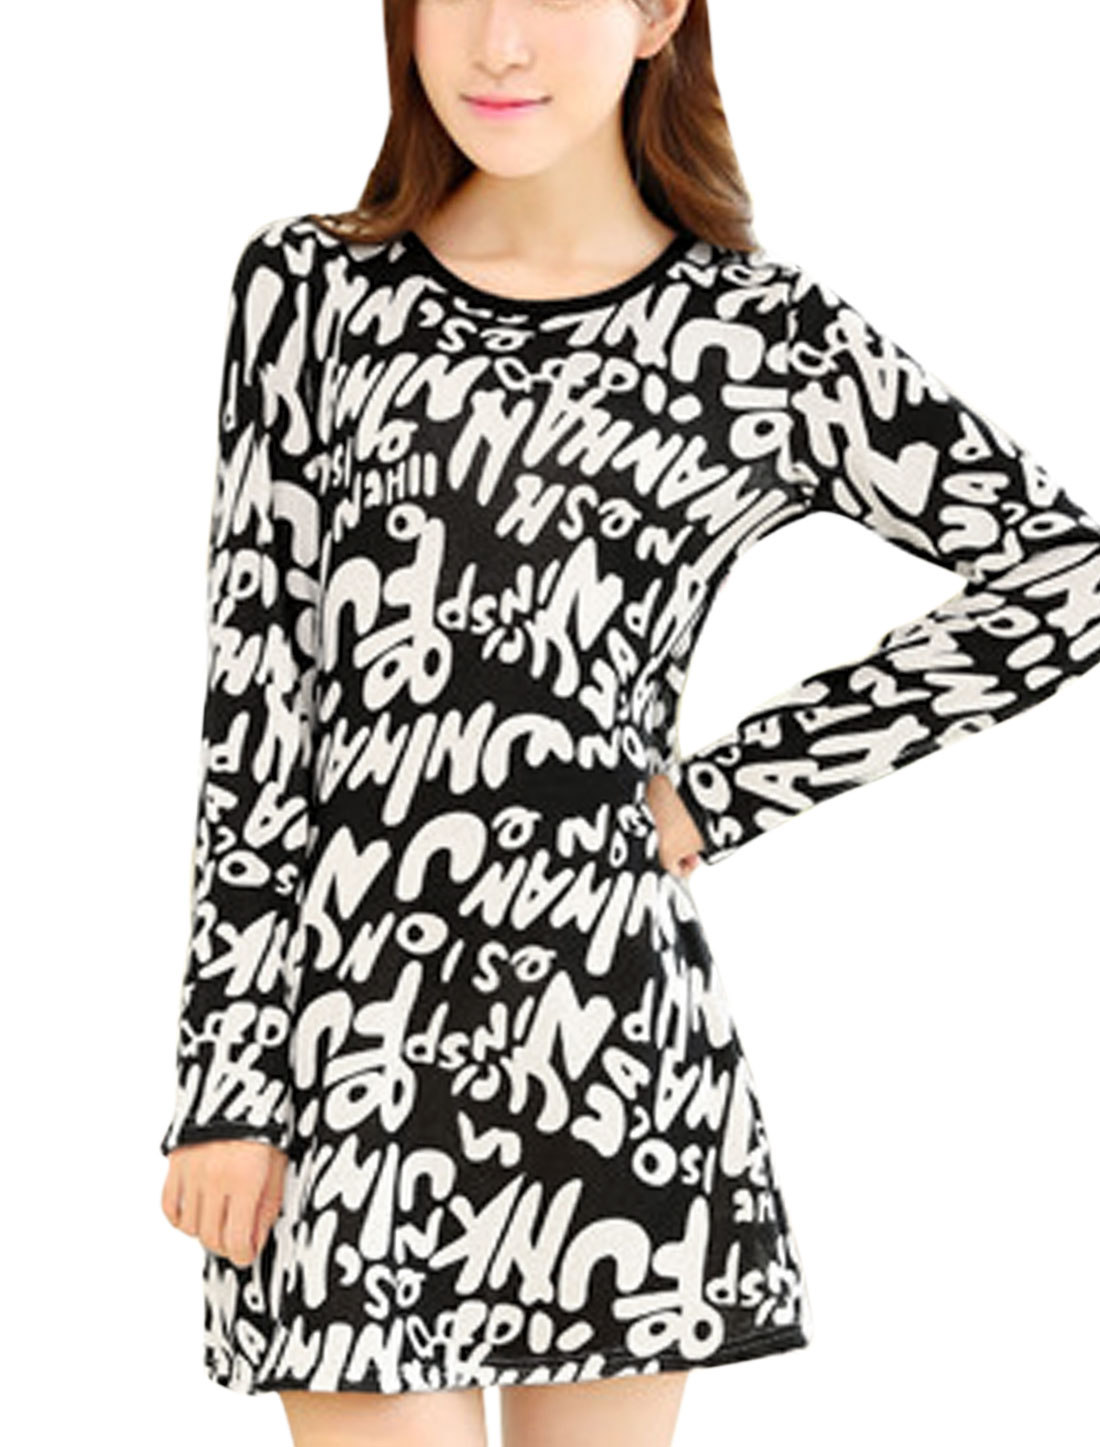 Lady Long Sleeve Letters Prints Round Neck Tunic Dress Black XS